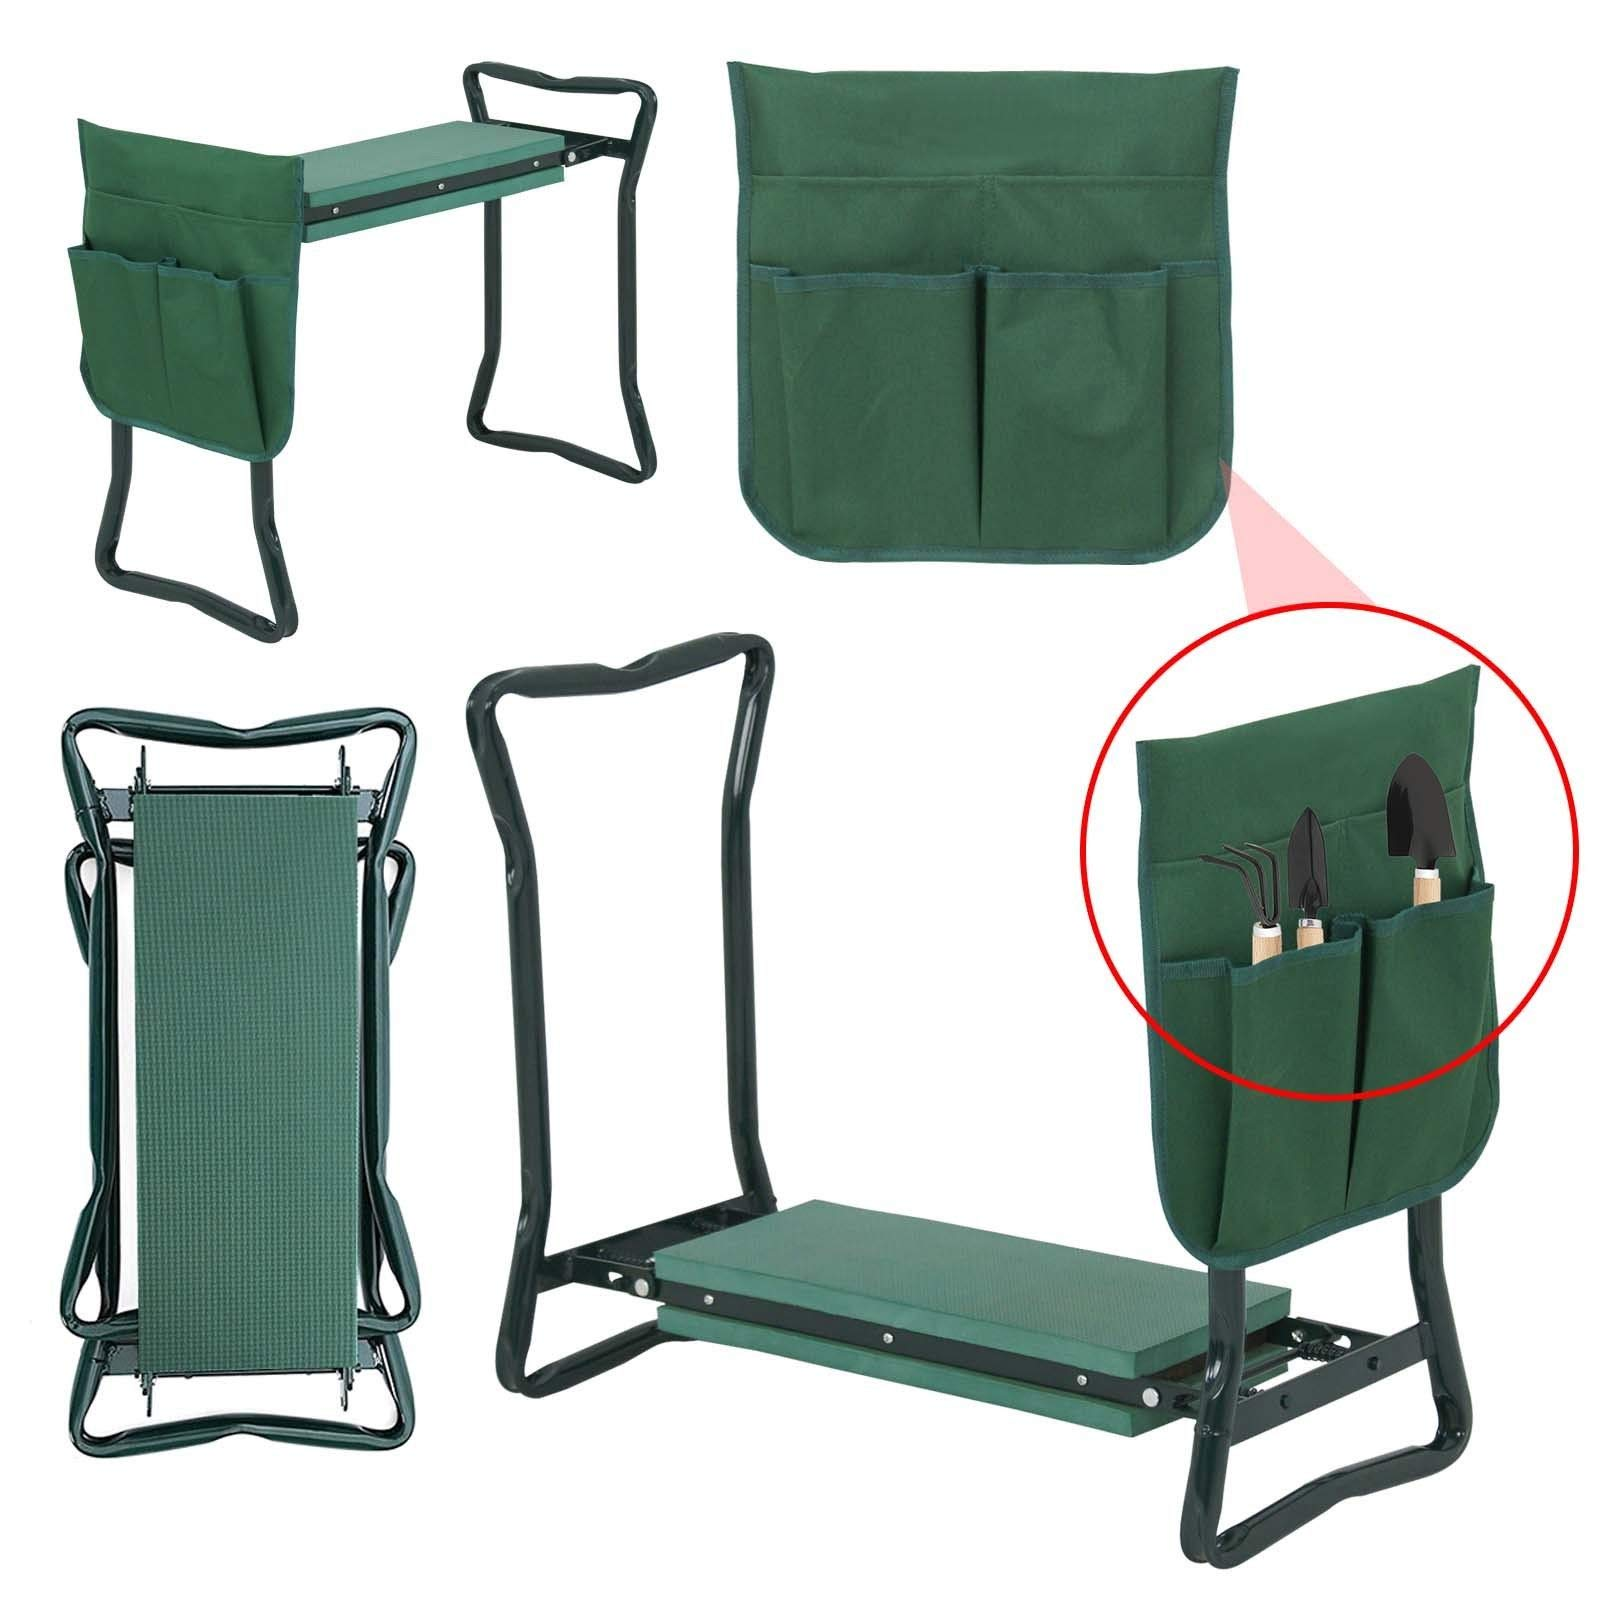 (GG) Garden Kneeler Seat w/EVA Folding Portable Bench Kneeling Pad and Tool Pouch New by Good Grannies by (GG) (Image #2)